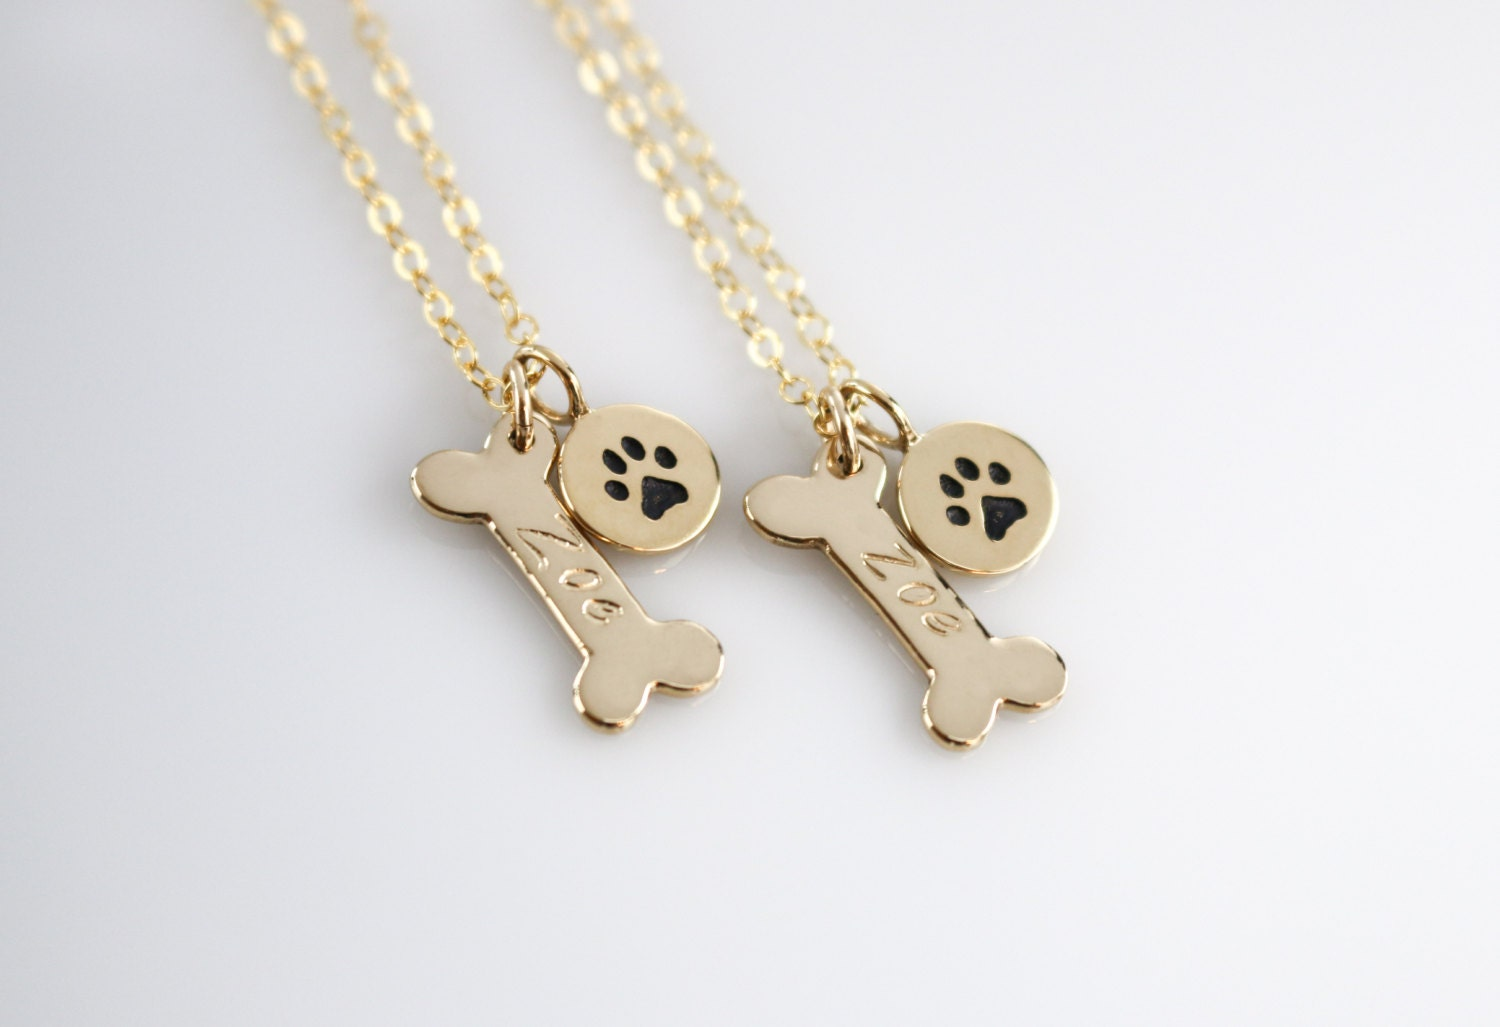 aece necklace yfn sterling women jewelry new fashion gold exclusive bone silver dog products pendant genuine heart paw